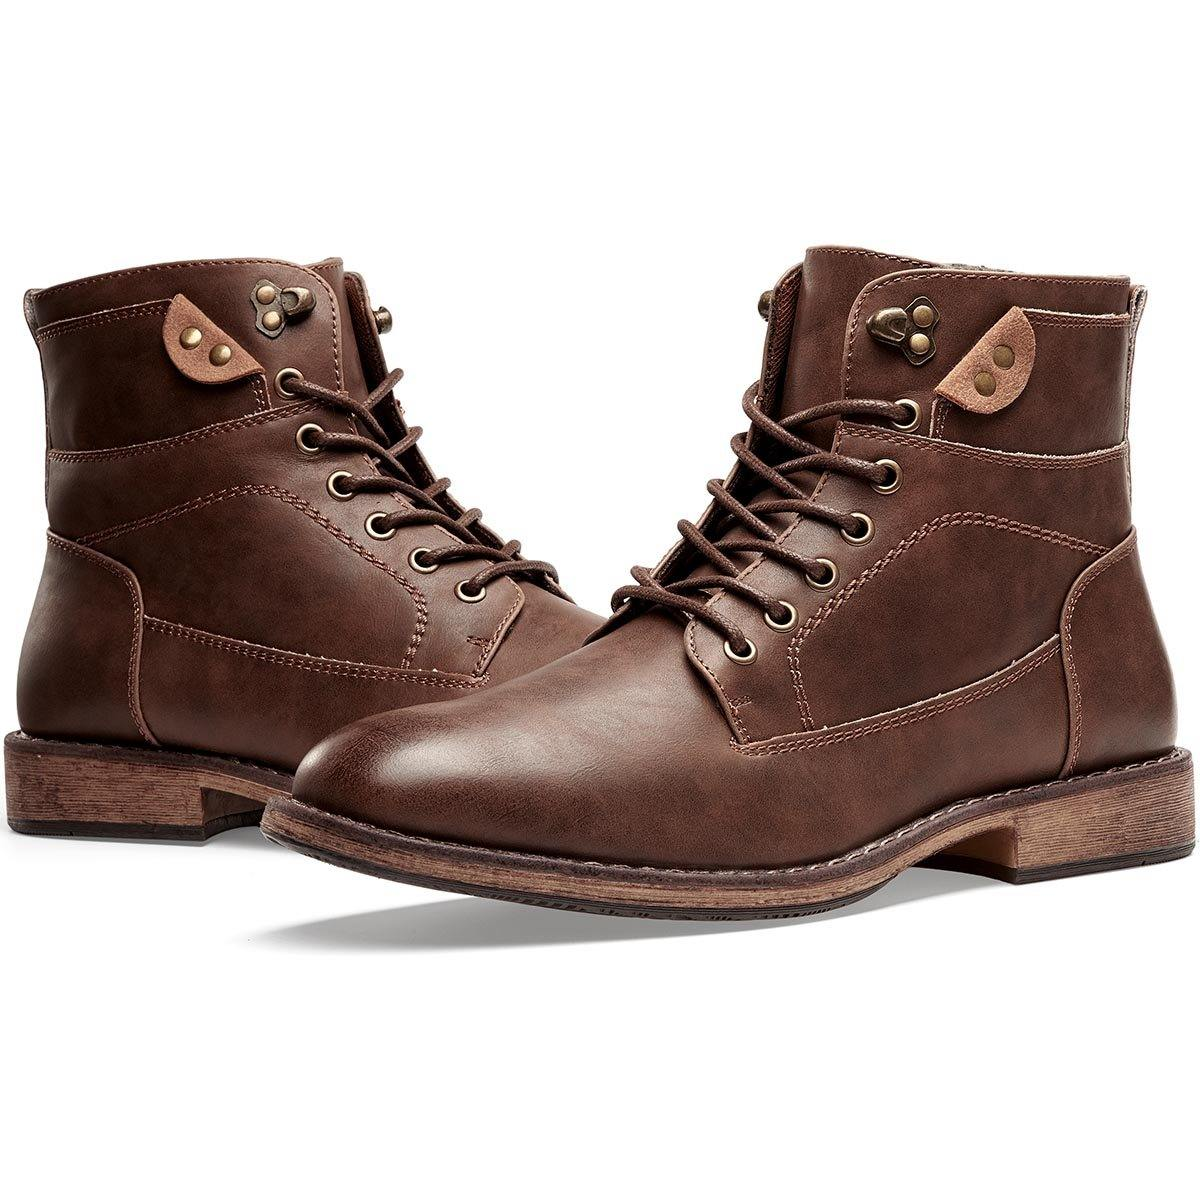 Men's Motorcycle Boots Business Casual | VOSTEY - Top shoes club